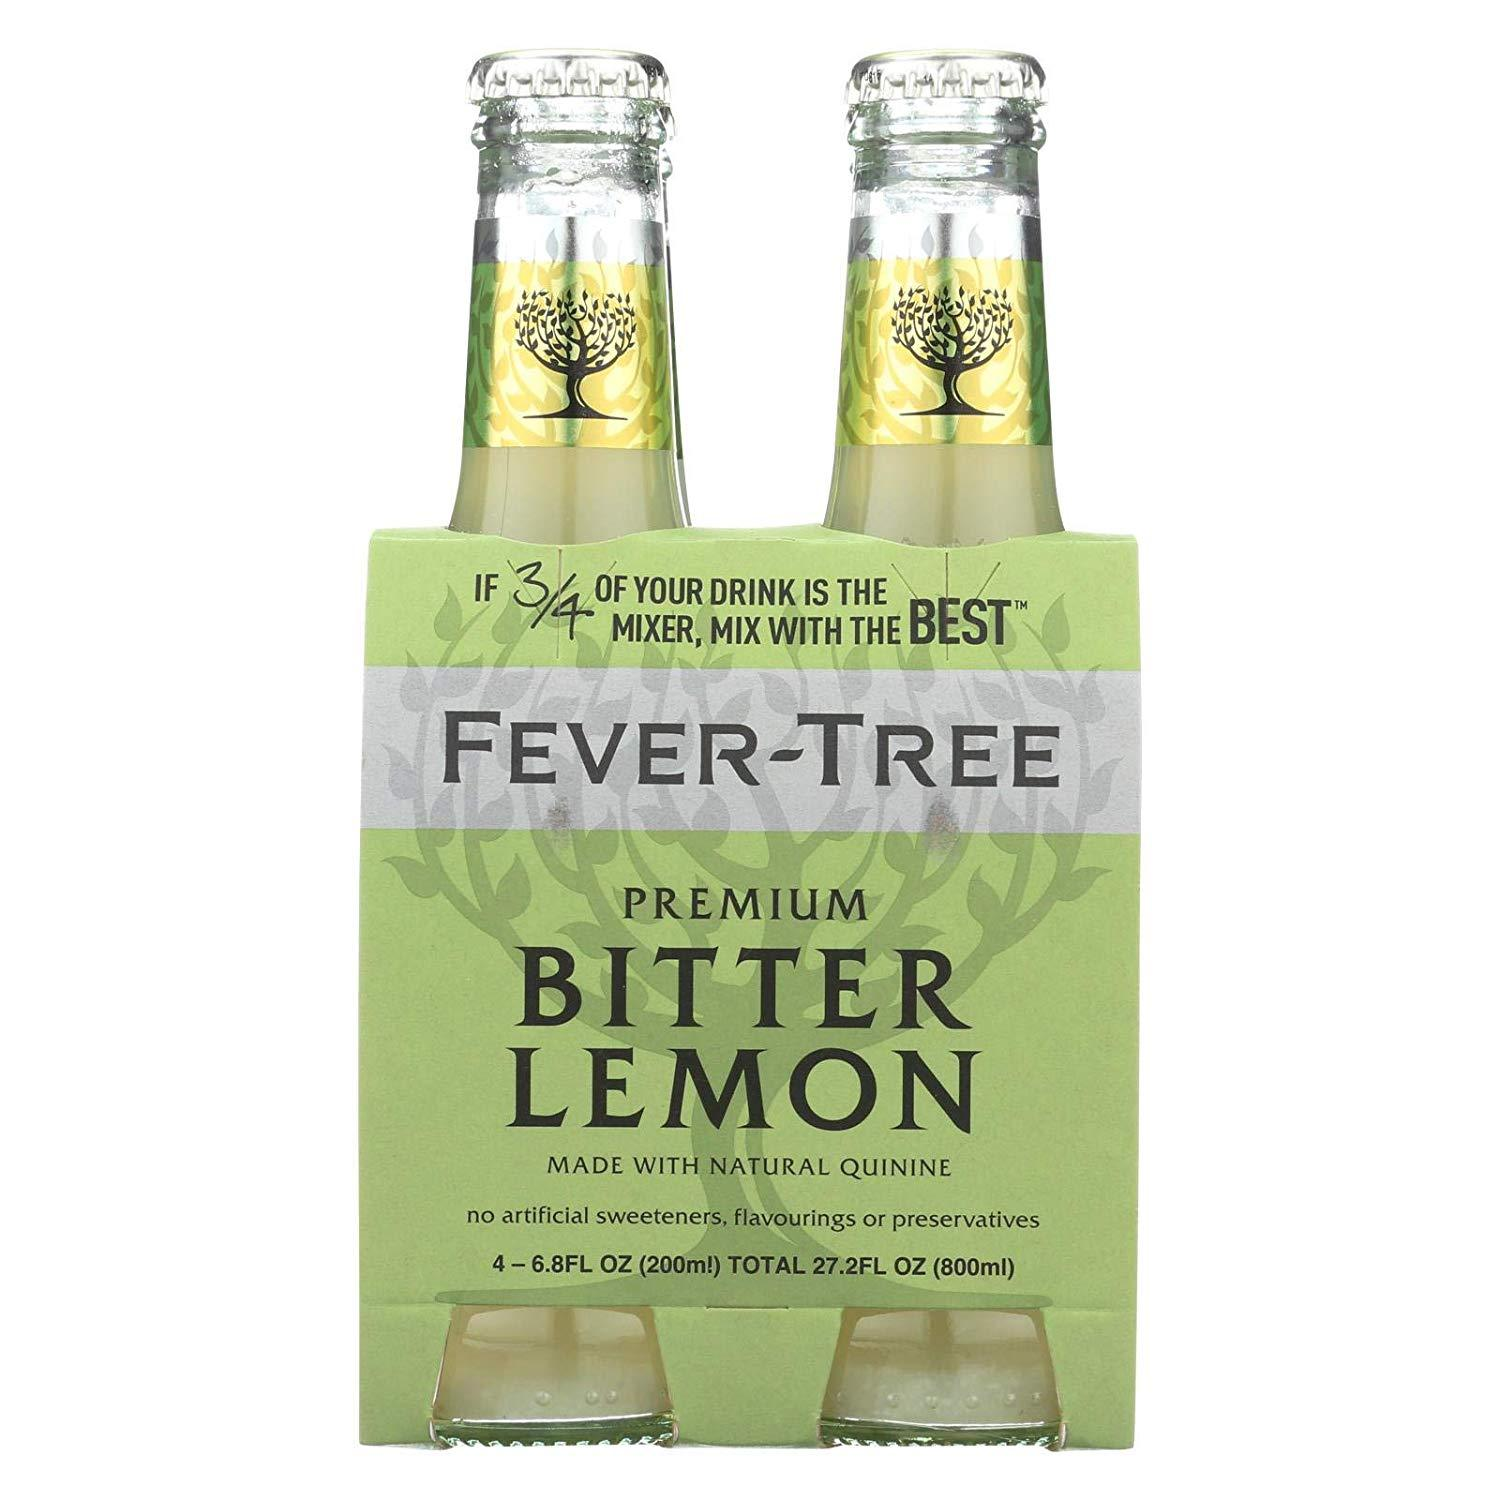 Fever Tree Bitter Lemon Photo